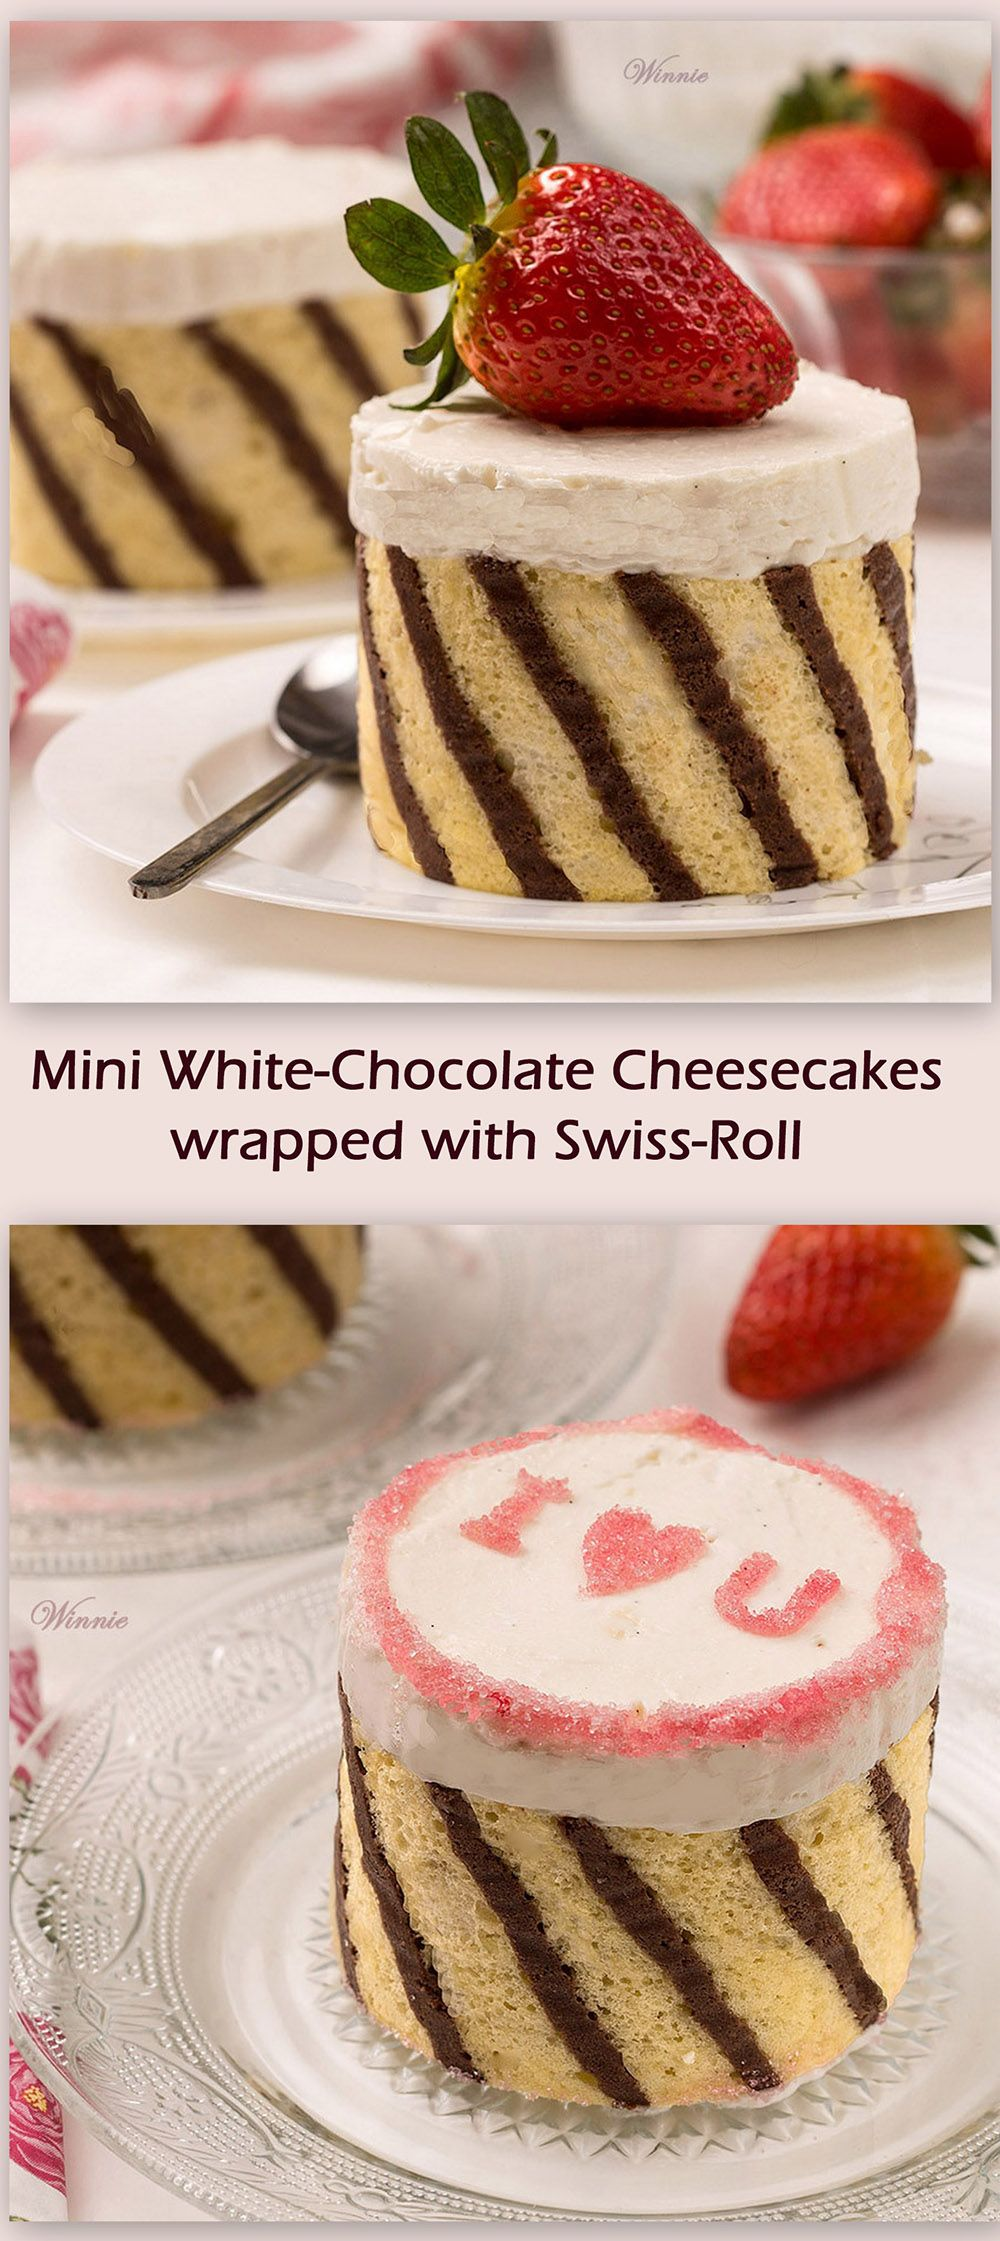 Mini White-Chocolate Cheesecakes, wrapped with Swiss-Roll